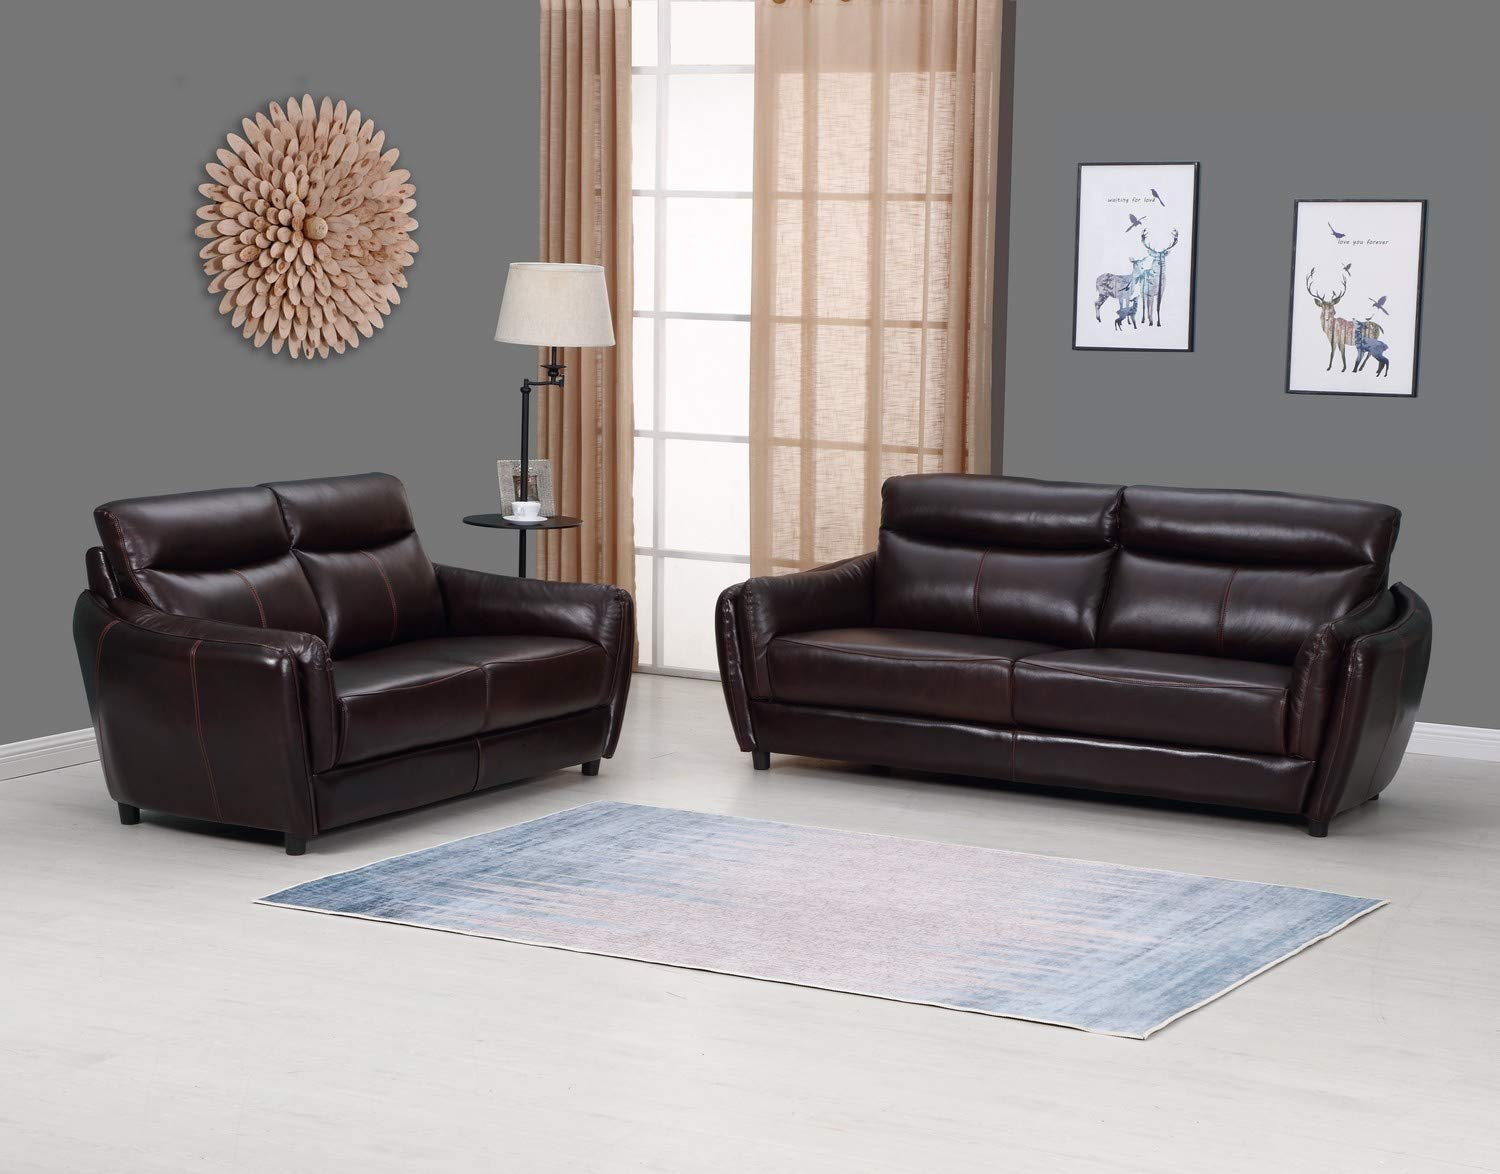 """Blackjack Furniture 9778-BROWN-2PC Troy Classic Top Grain Leather Living Room Sofa and Loveseat Set, 82"""", Brown"""